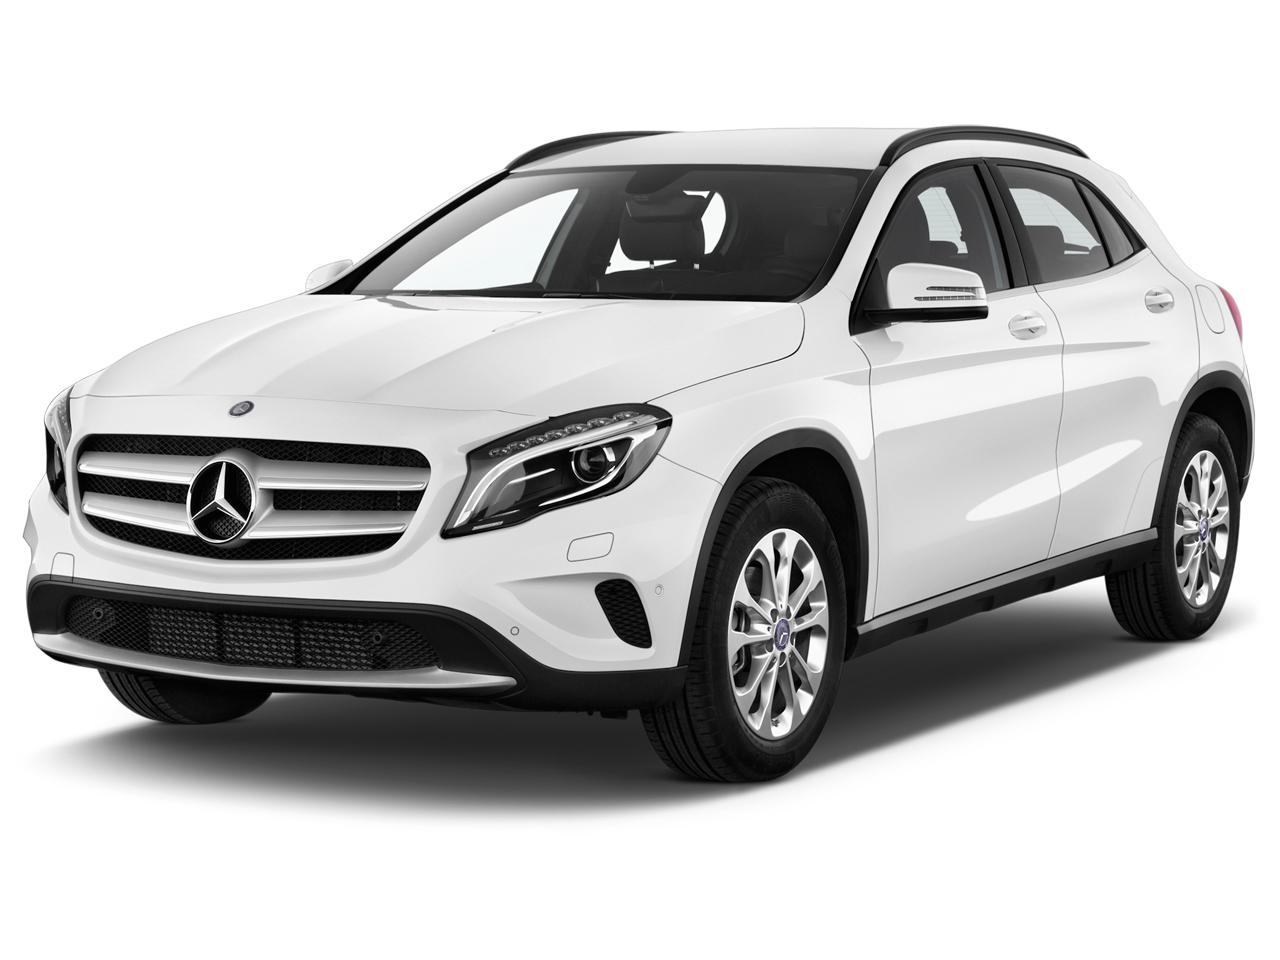 2015 mercedes benz gla class review ratings specs for Mercedes benz gla 2015 price